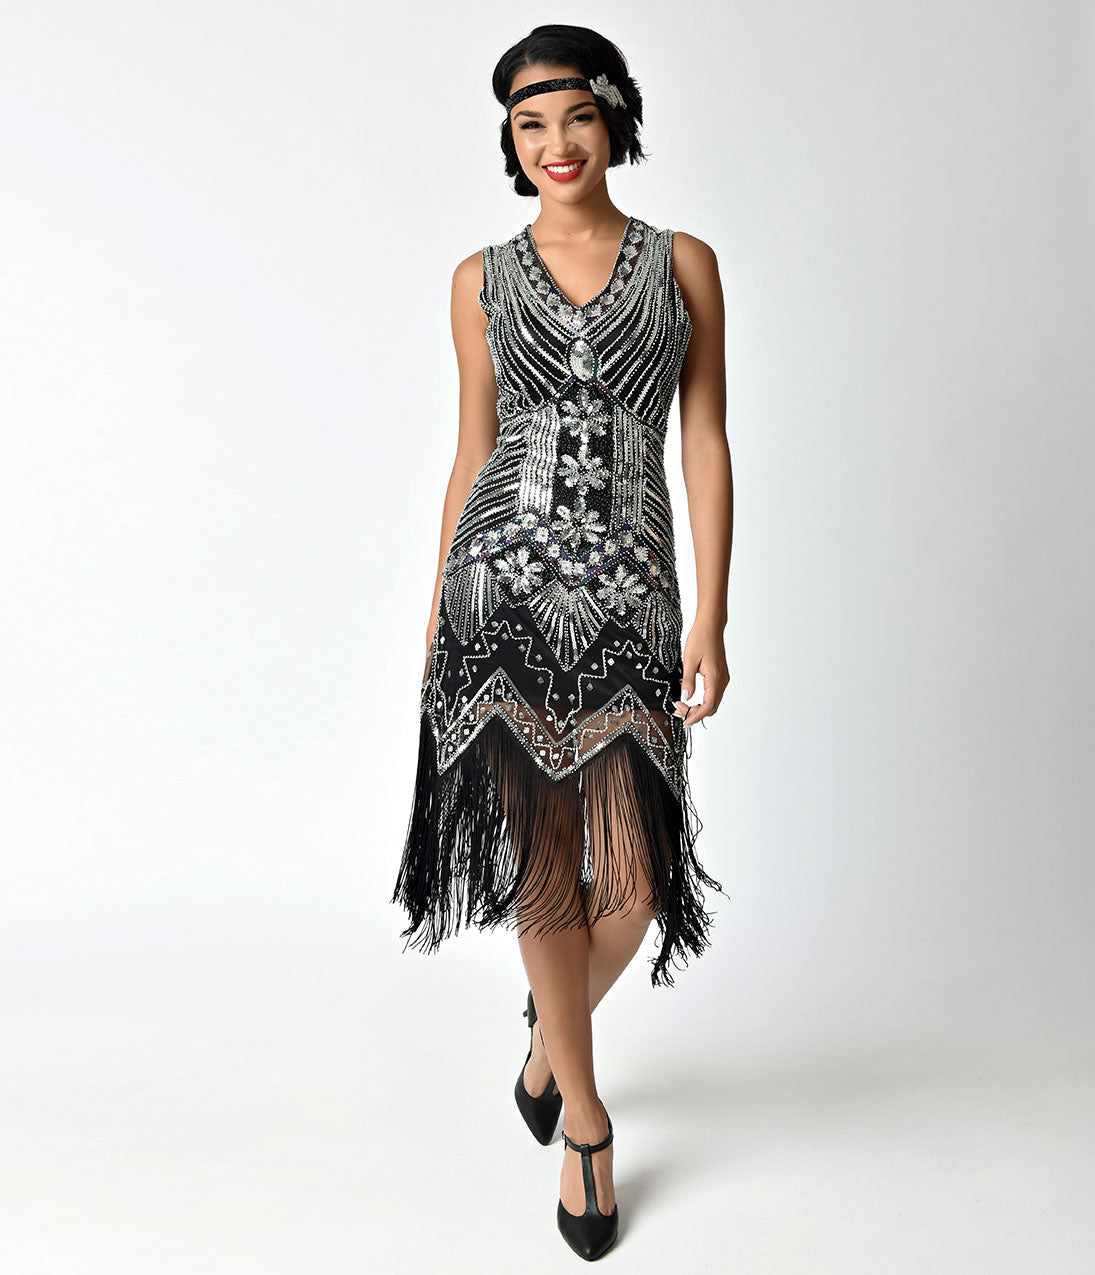 97518b174e9 Unique Vintage 1920s Deco Silver   Black Veronique Fringe Flapper Dress